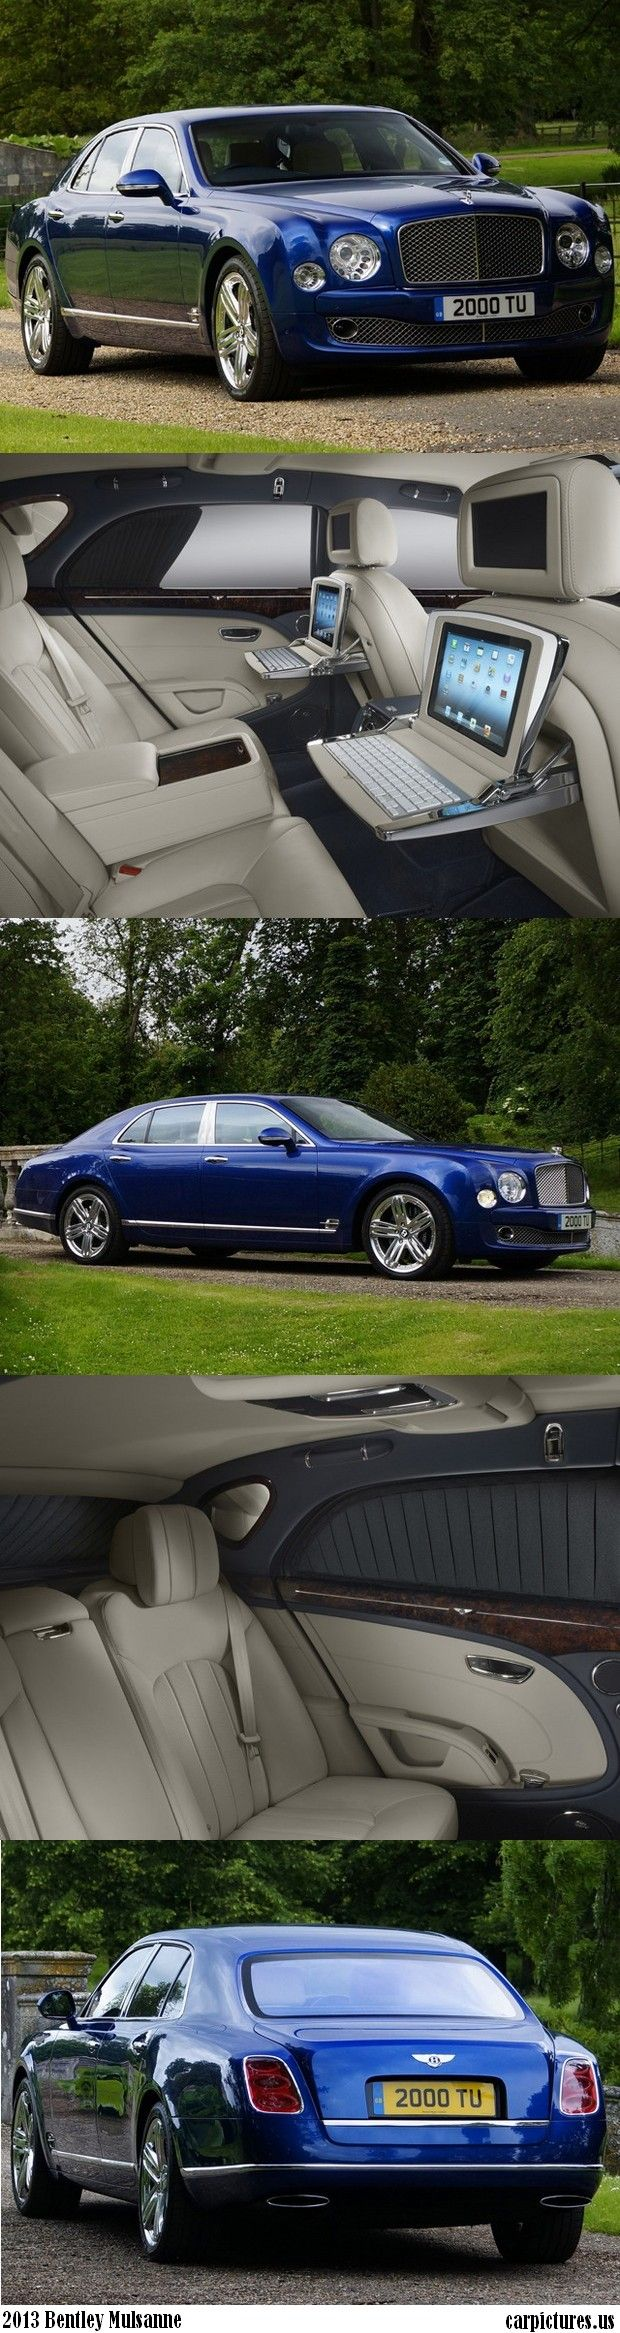 2013 new bentley mulsanne price and specs car pictures bentley mulsanne new bentley sports cars pinterest